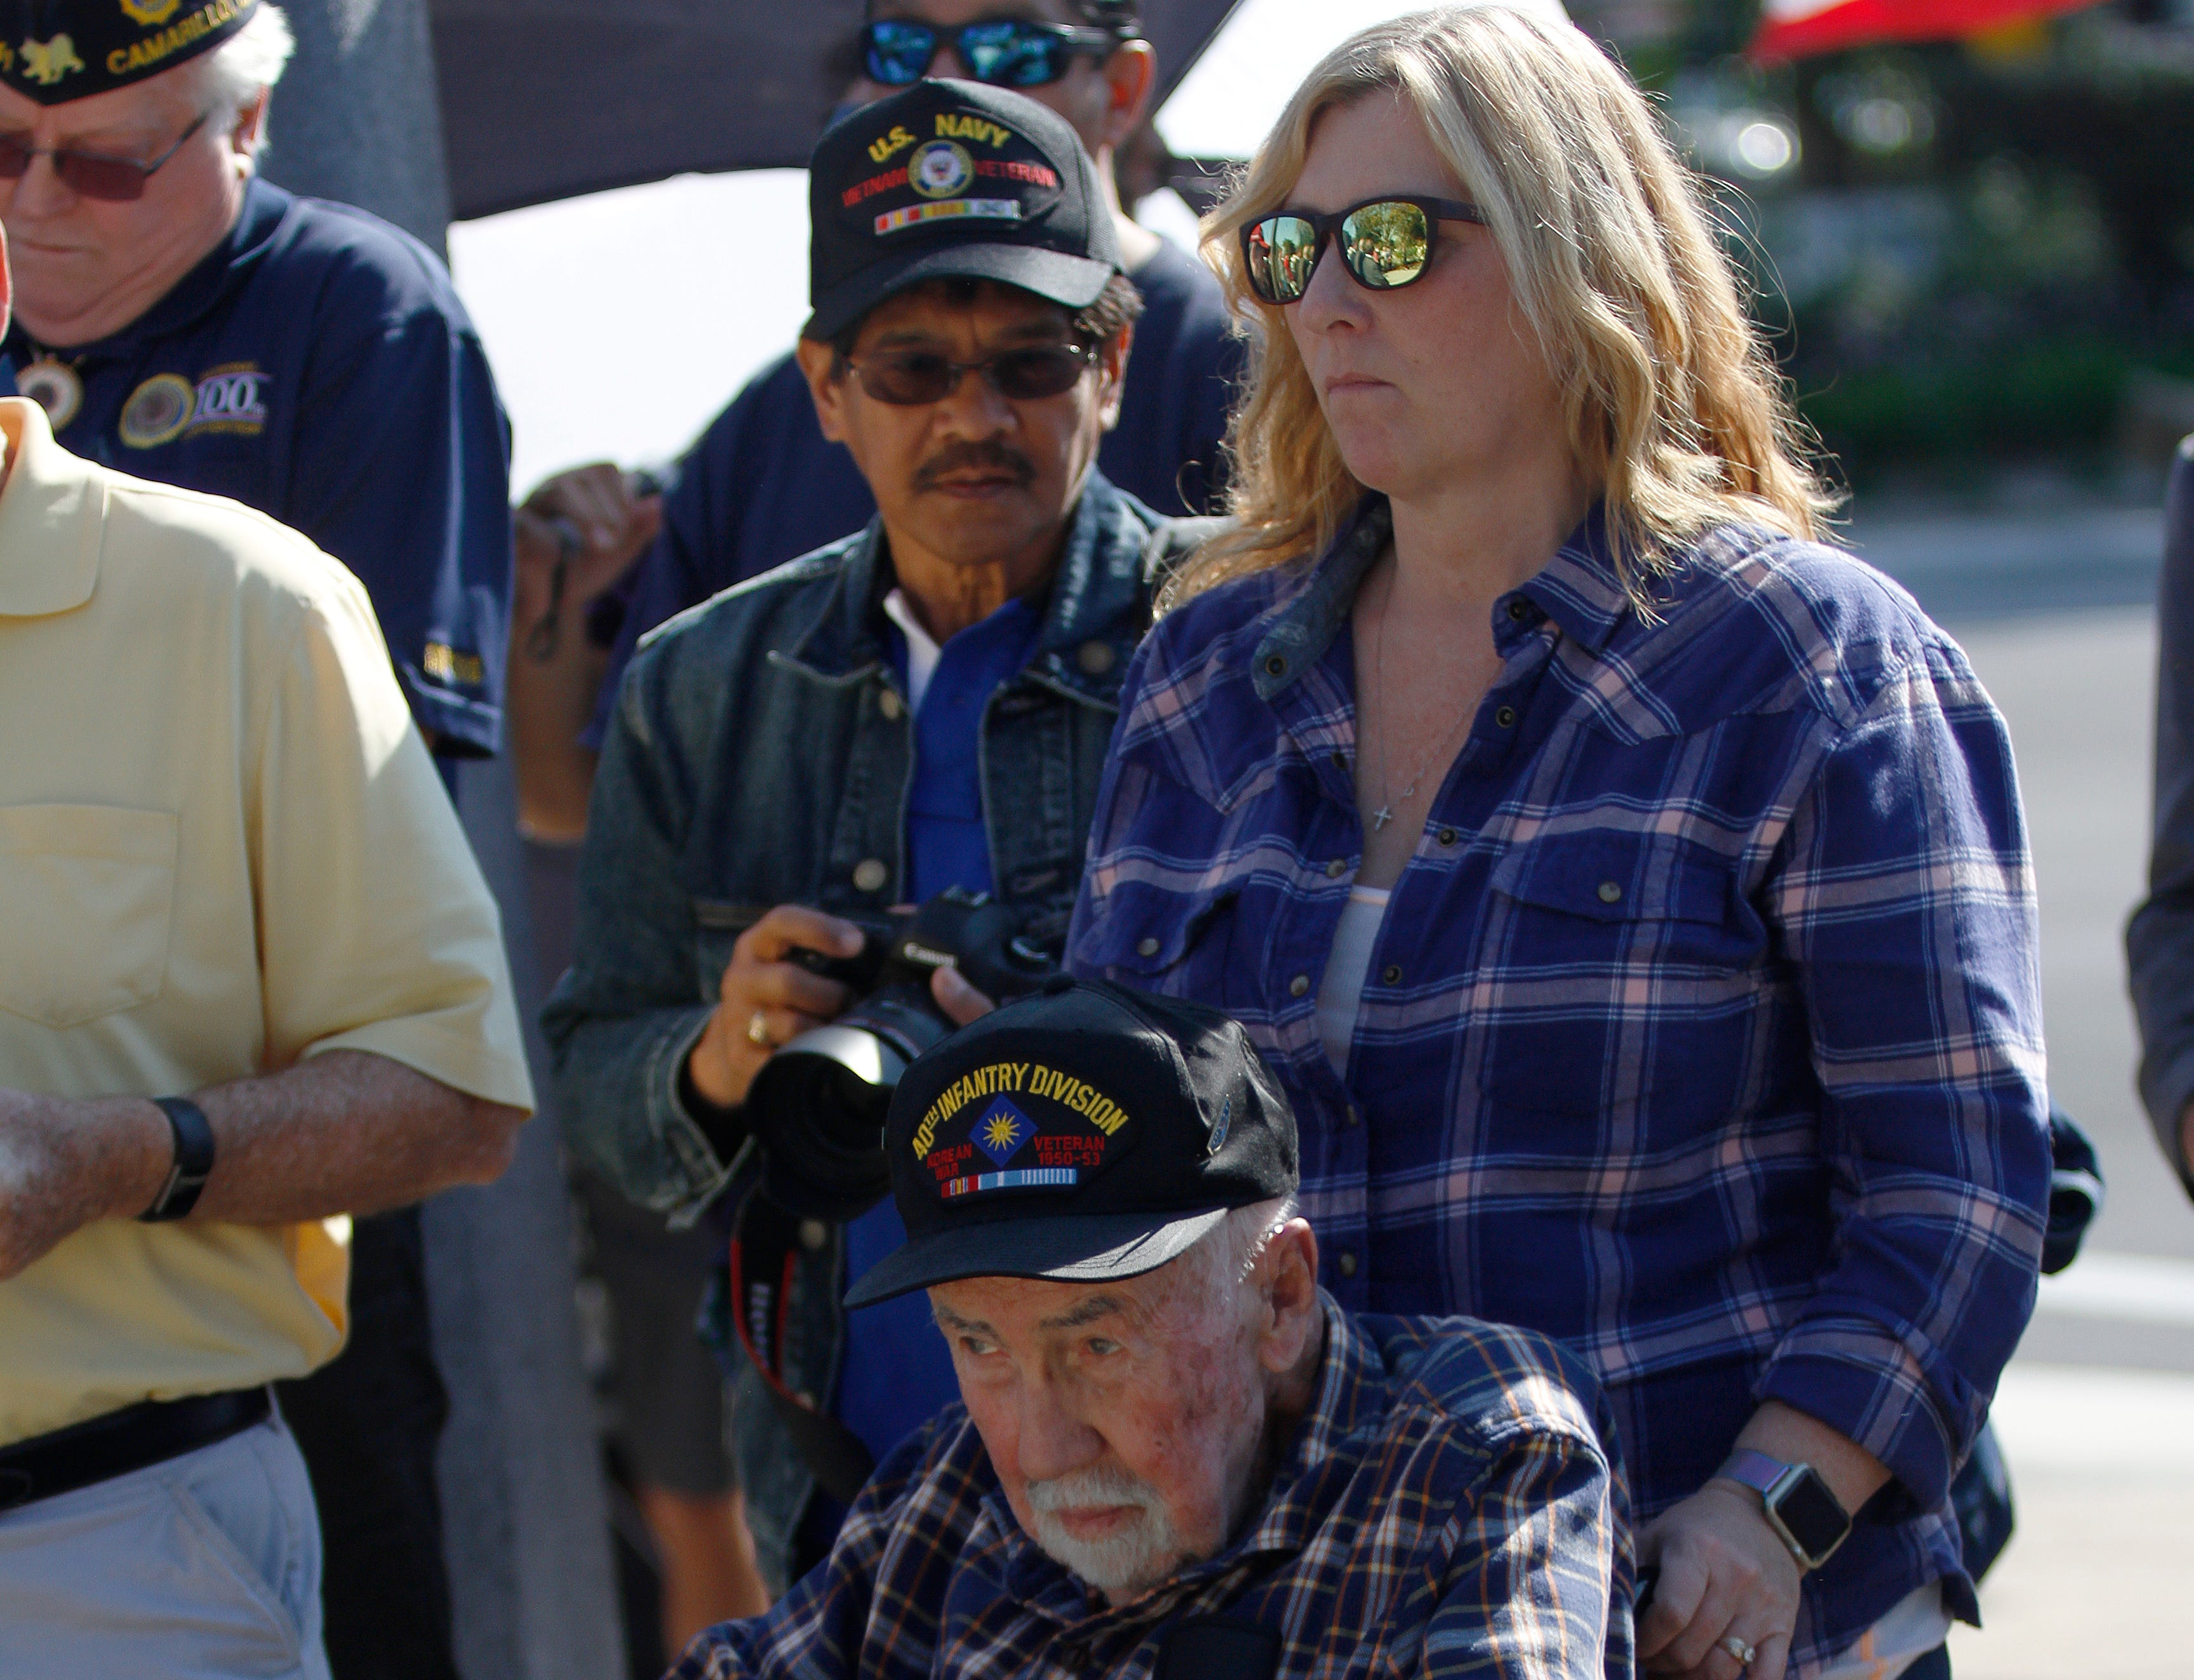 Korean War Army veteran Bob Nunn and Vicky Juengermann watch the unveiling of the new Veterans Memorial Monument on Saturday in Camarillo.